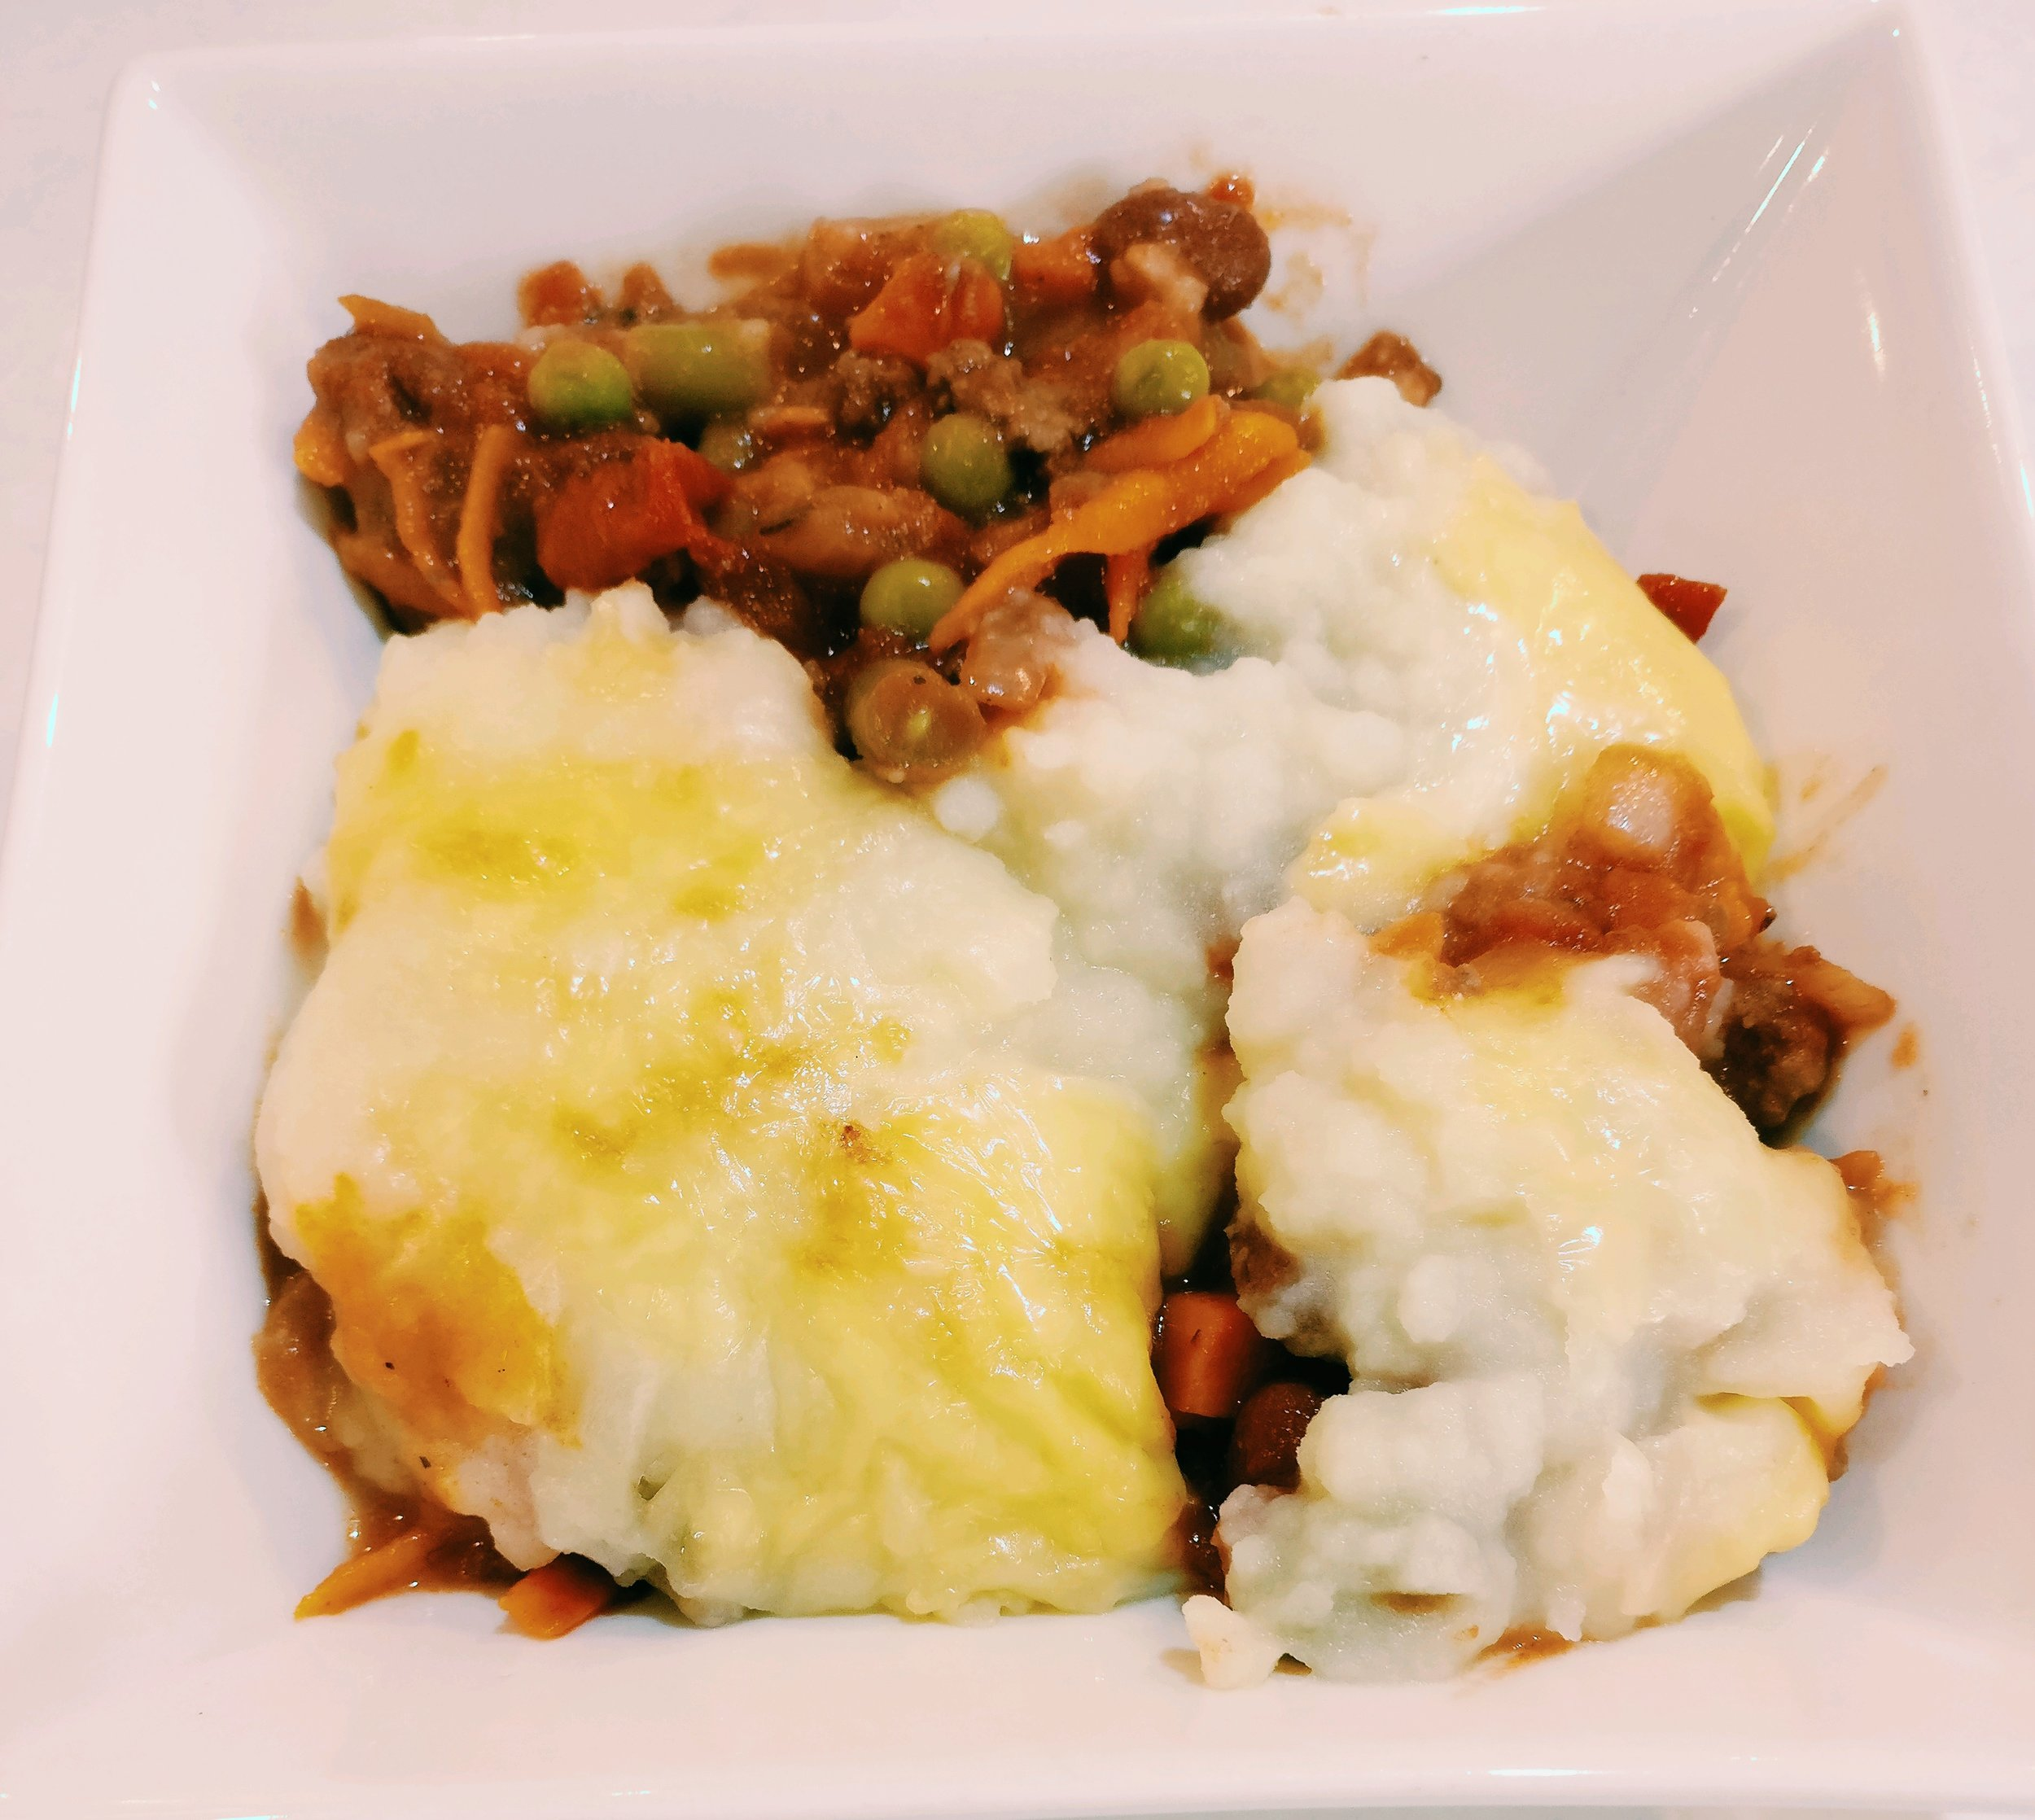 Cottage Pie - Ingredients150g Beef Mince1/2 Onion - Diced1C Frozen Veges2 Potatoes - boiled and mashed1 Tin Tomatoes1/2 Tin Chilli Beans1 Carrot - GratedGrated CheeseMethod1. Brown the mince and onion in a frying pan2. Add the frozen veges, tinned tomatoes, grated carrot and chilli beans to the mince mixutre - cook through for 5 mins3. Boil the potatoes and mash them4. Pour the mince mixture into an oven proof bowl5. Top with the mashed potato and grated cheese6. Bake in the oven at 180 until the cheese is brown